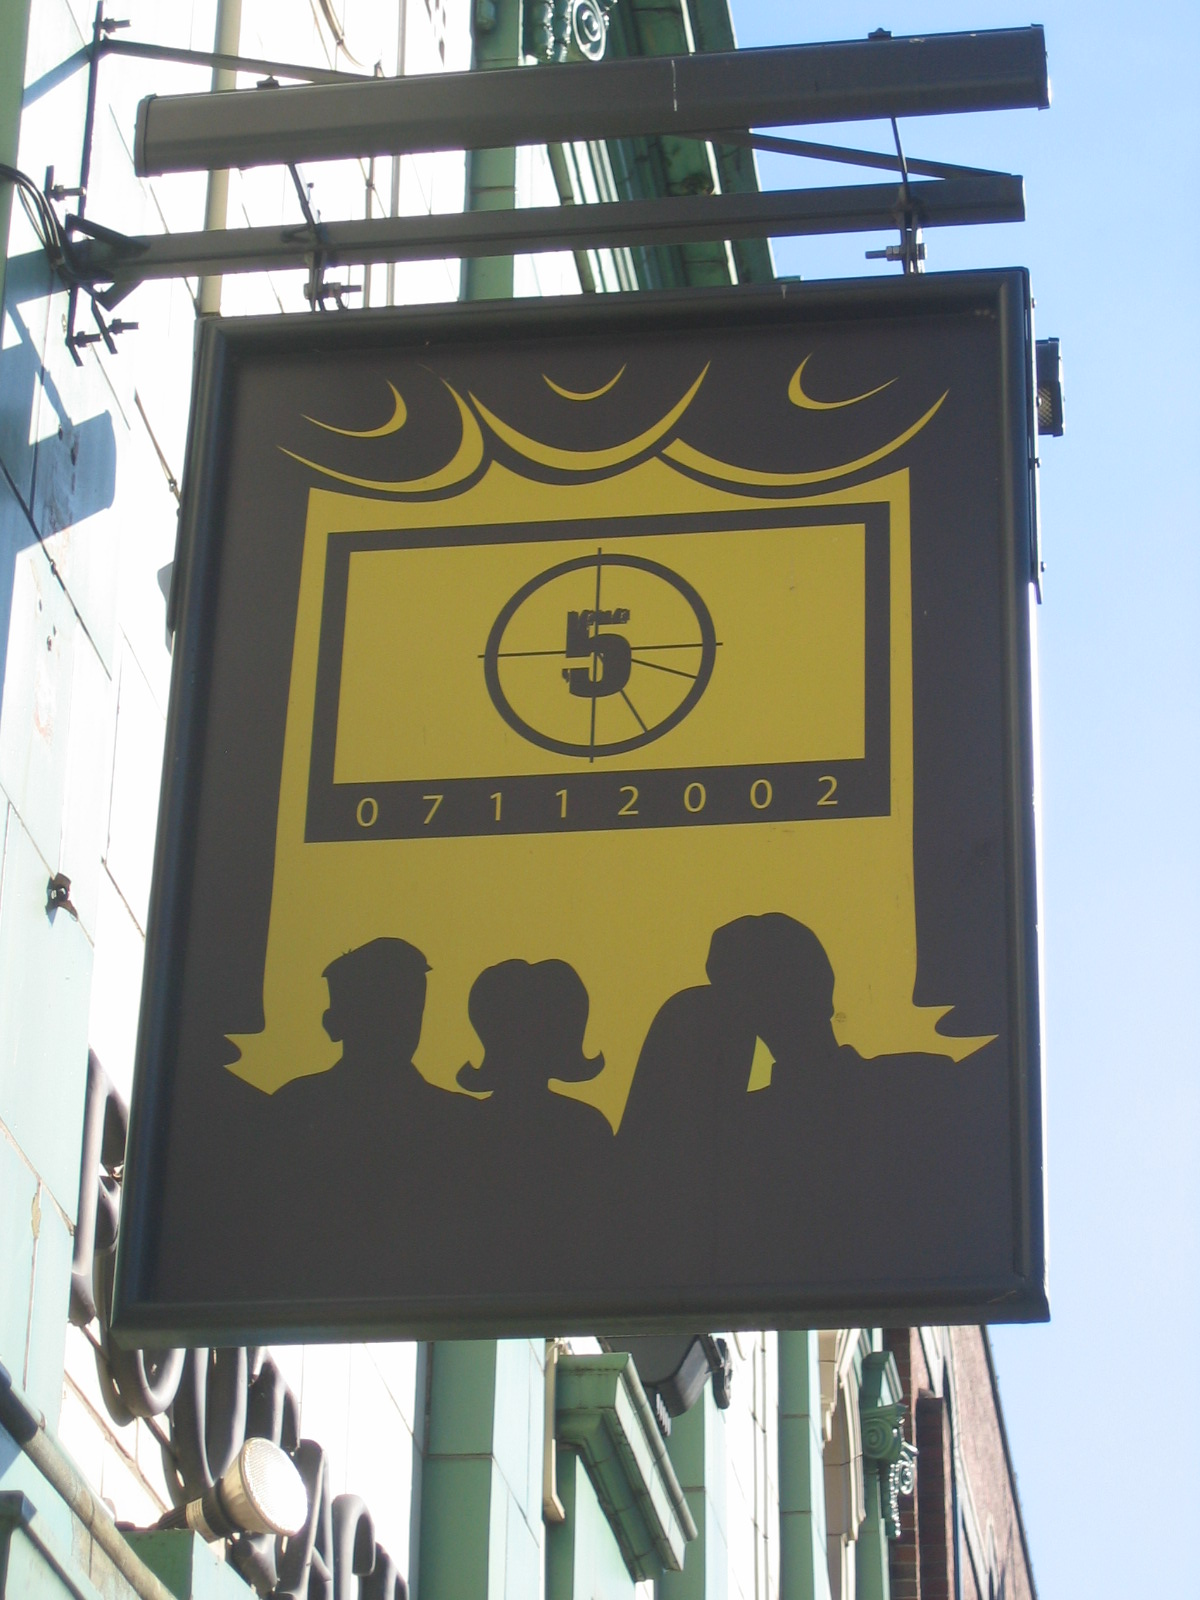 Photo – The Footage pub, Manchester, taken by me